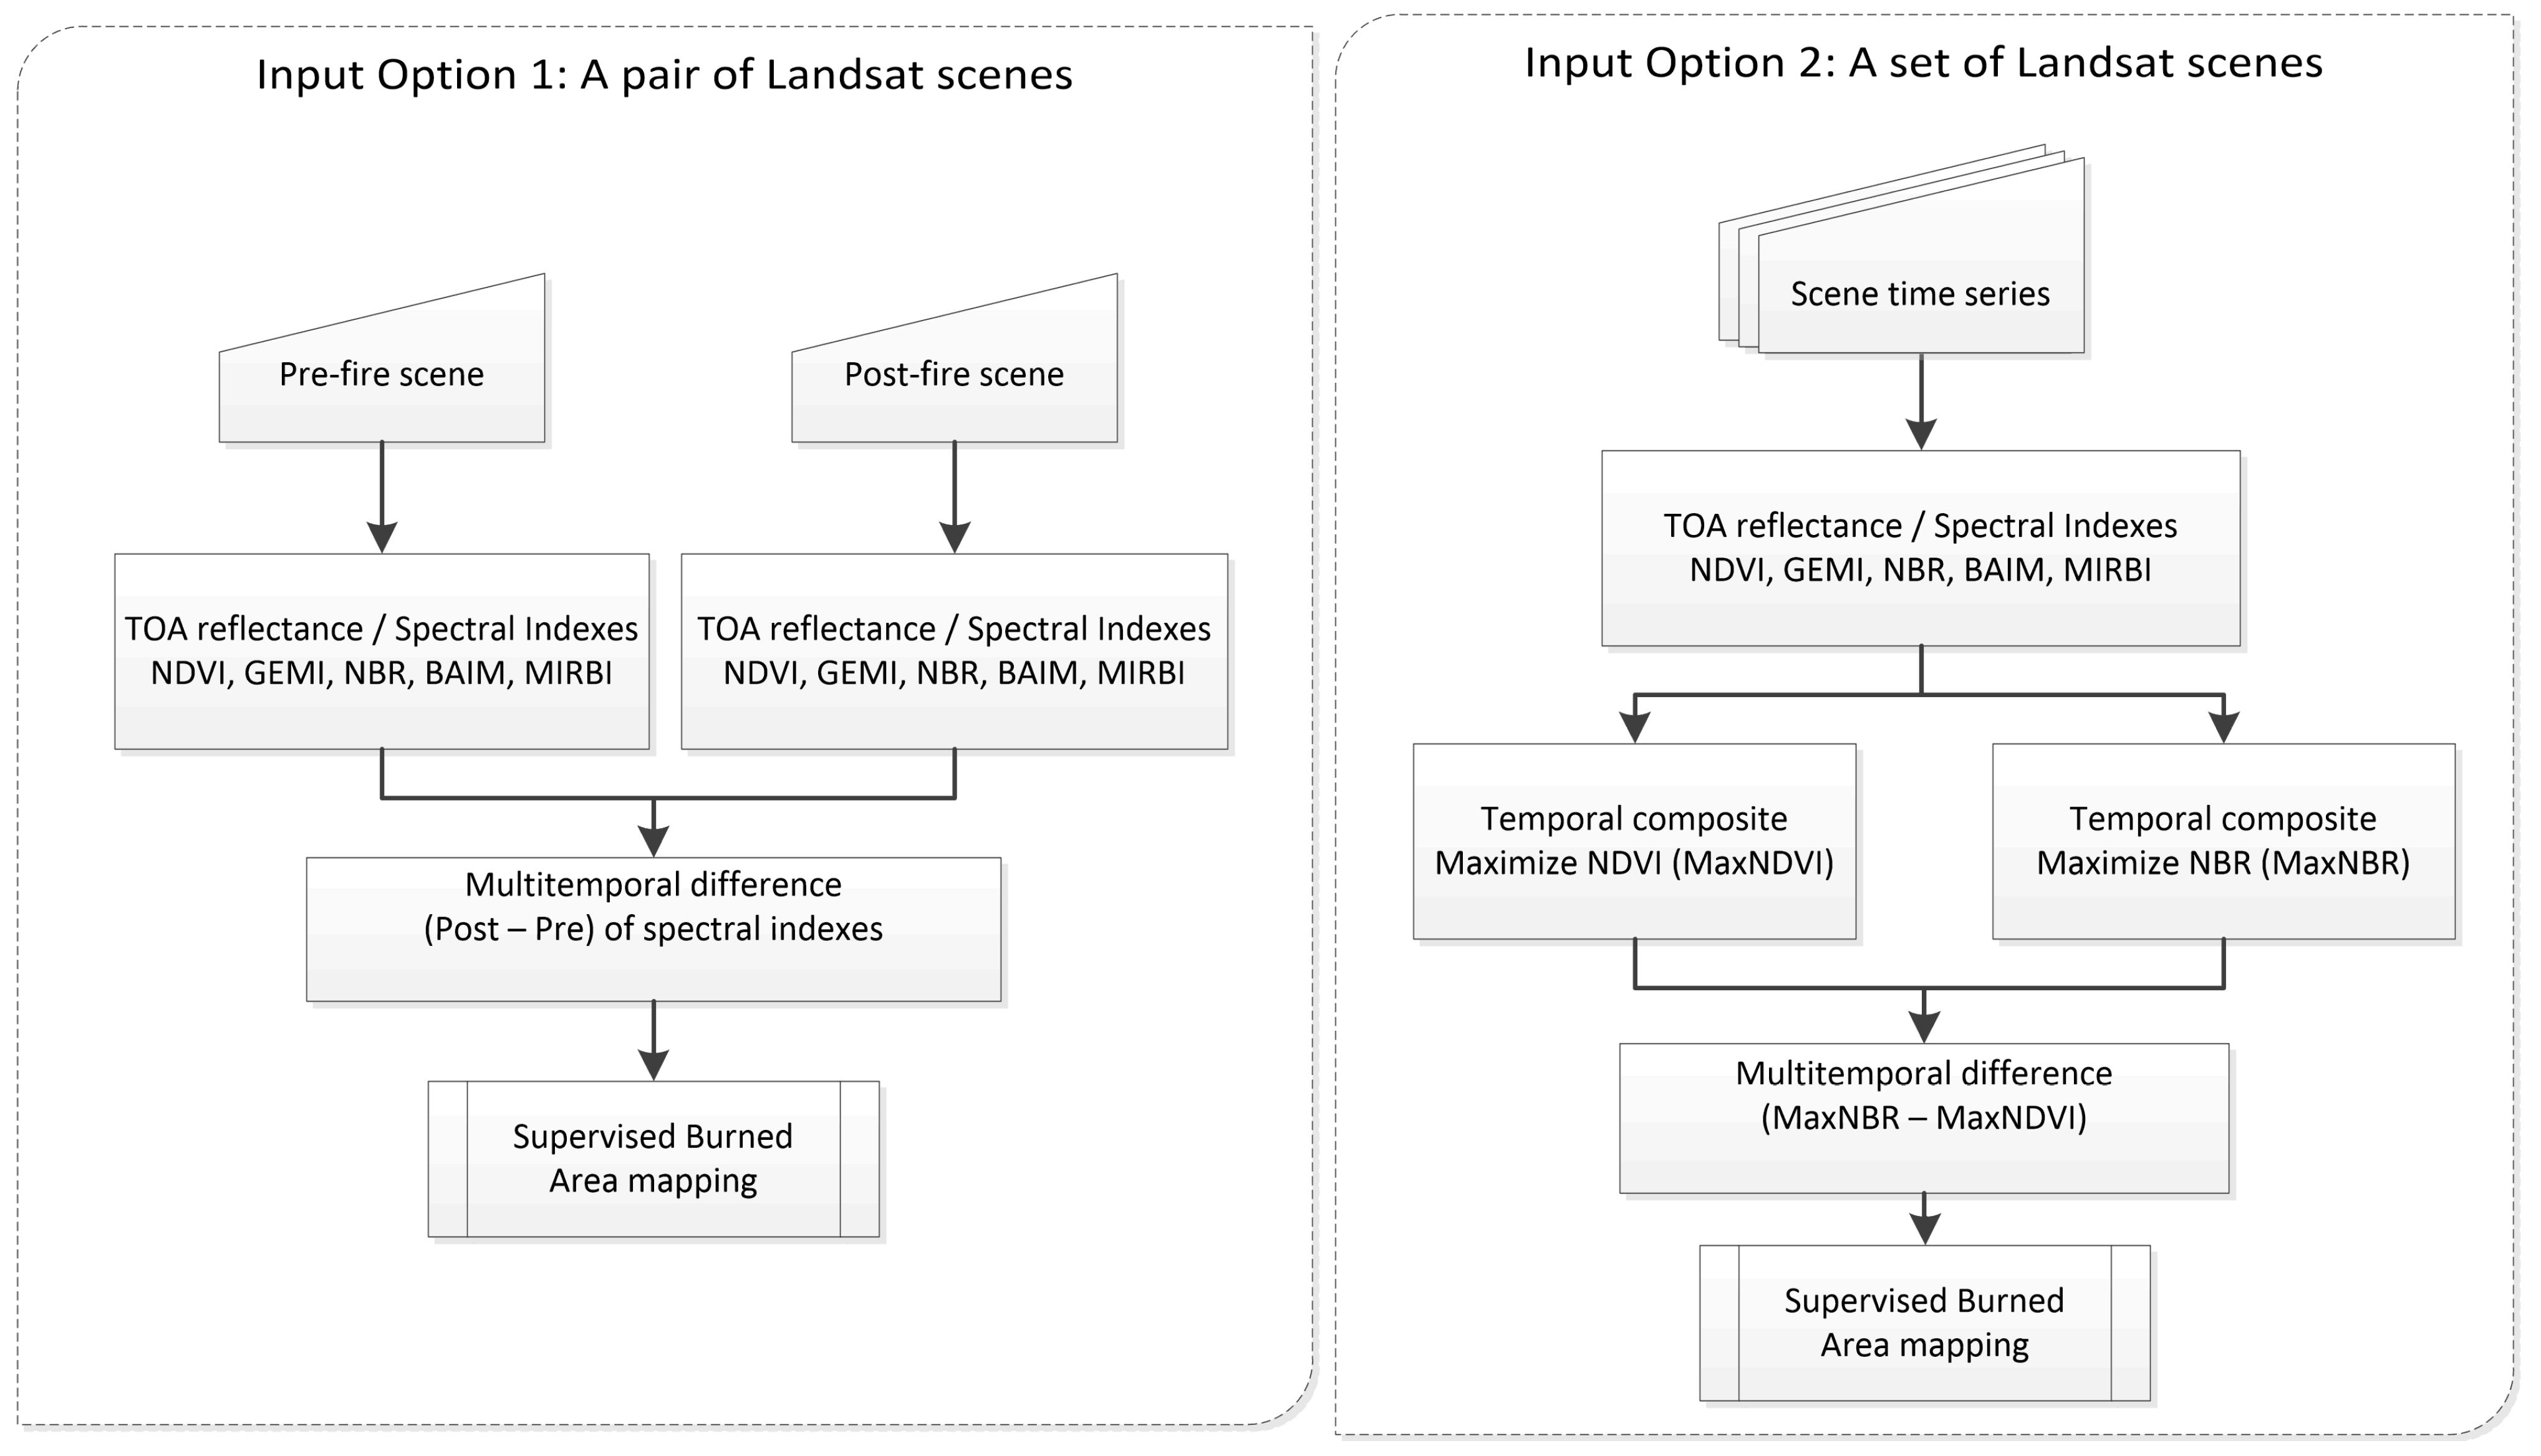 Remote Sensing | Free Full-Text | BAMS: A Tool for Supervised Burned